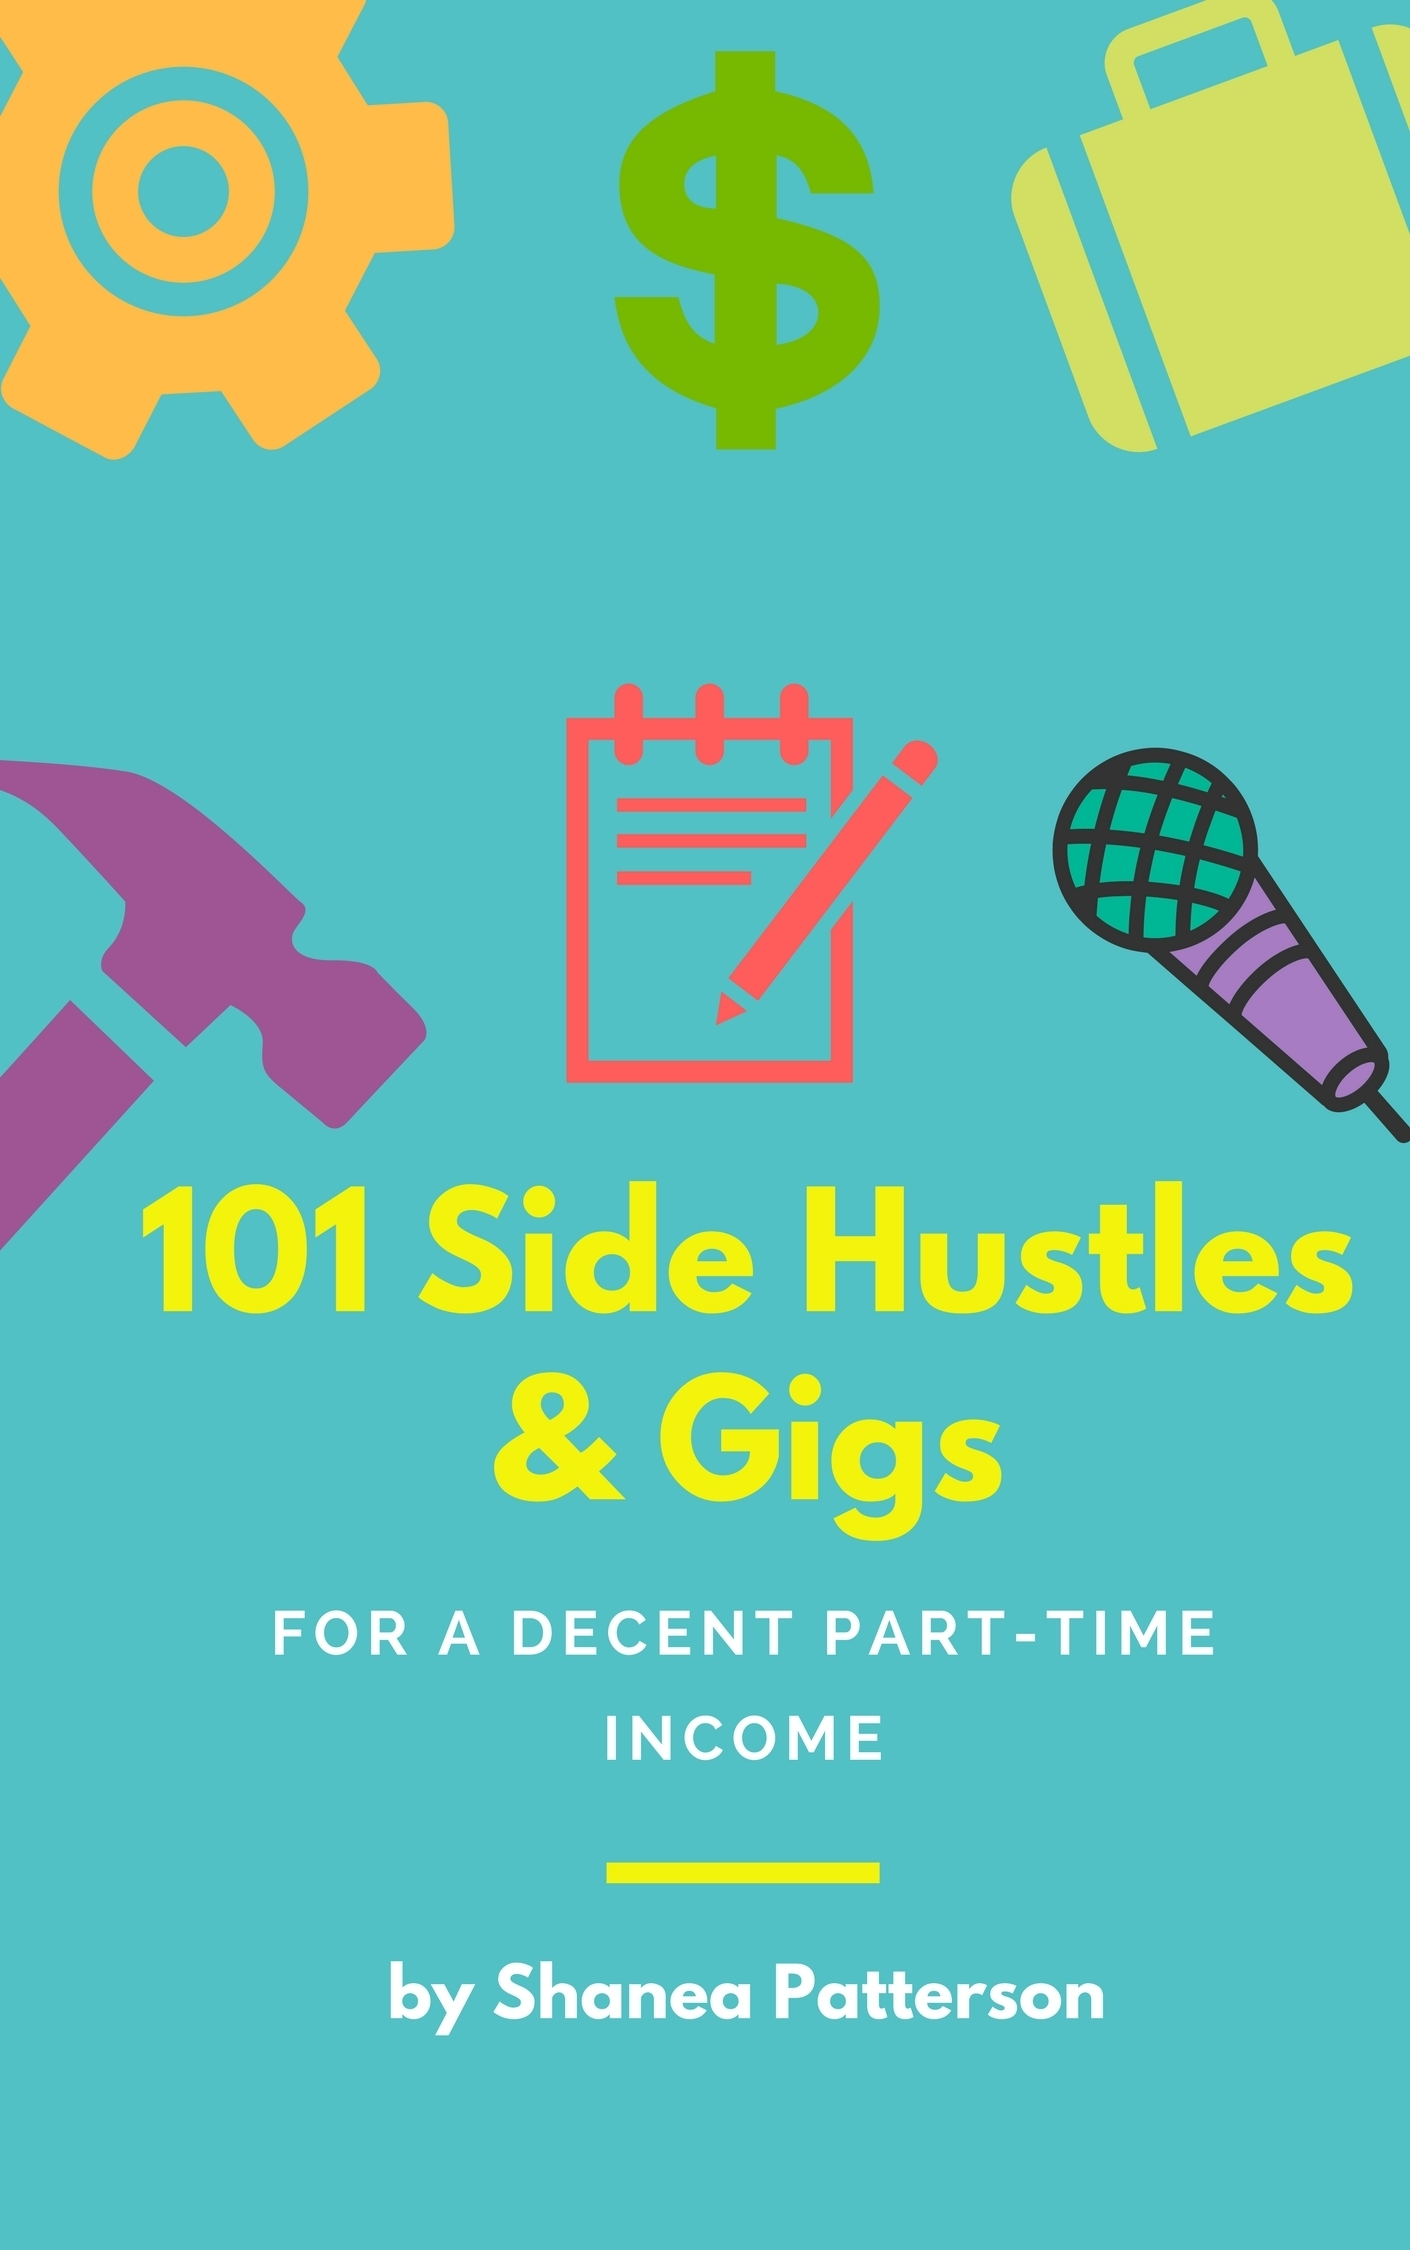 101 Side Hustles  Gigs for a Decent Part-Time Income